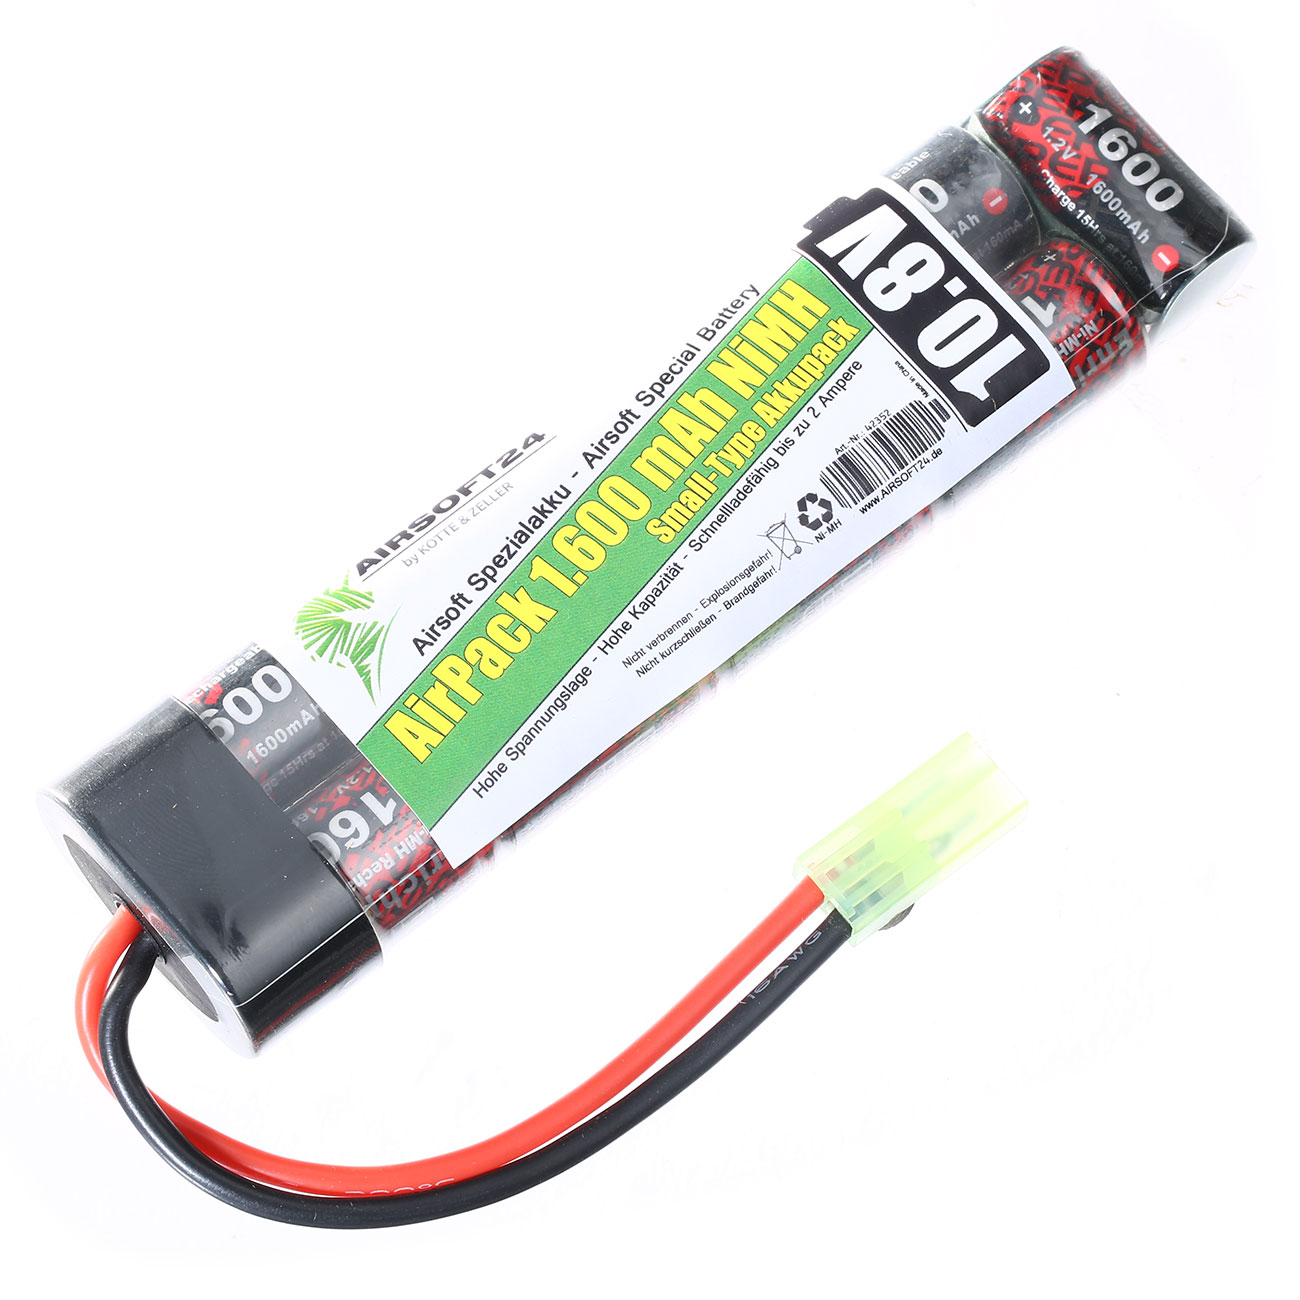 Airsoft24 AirPack Akku 10.8V 1600mAh NiMH Small-Type mit Mini-Tam Anschluss 0